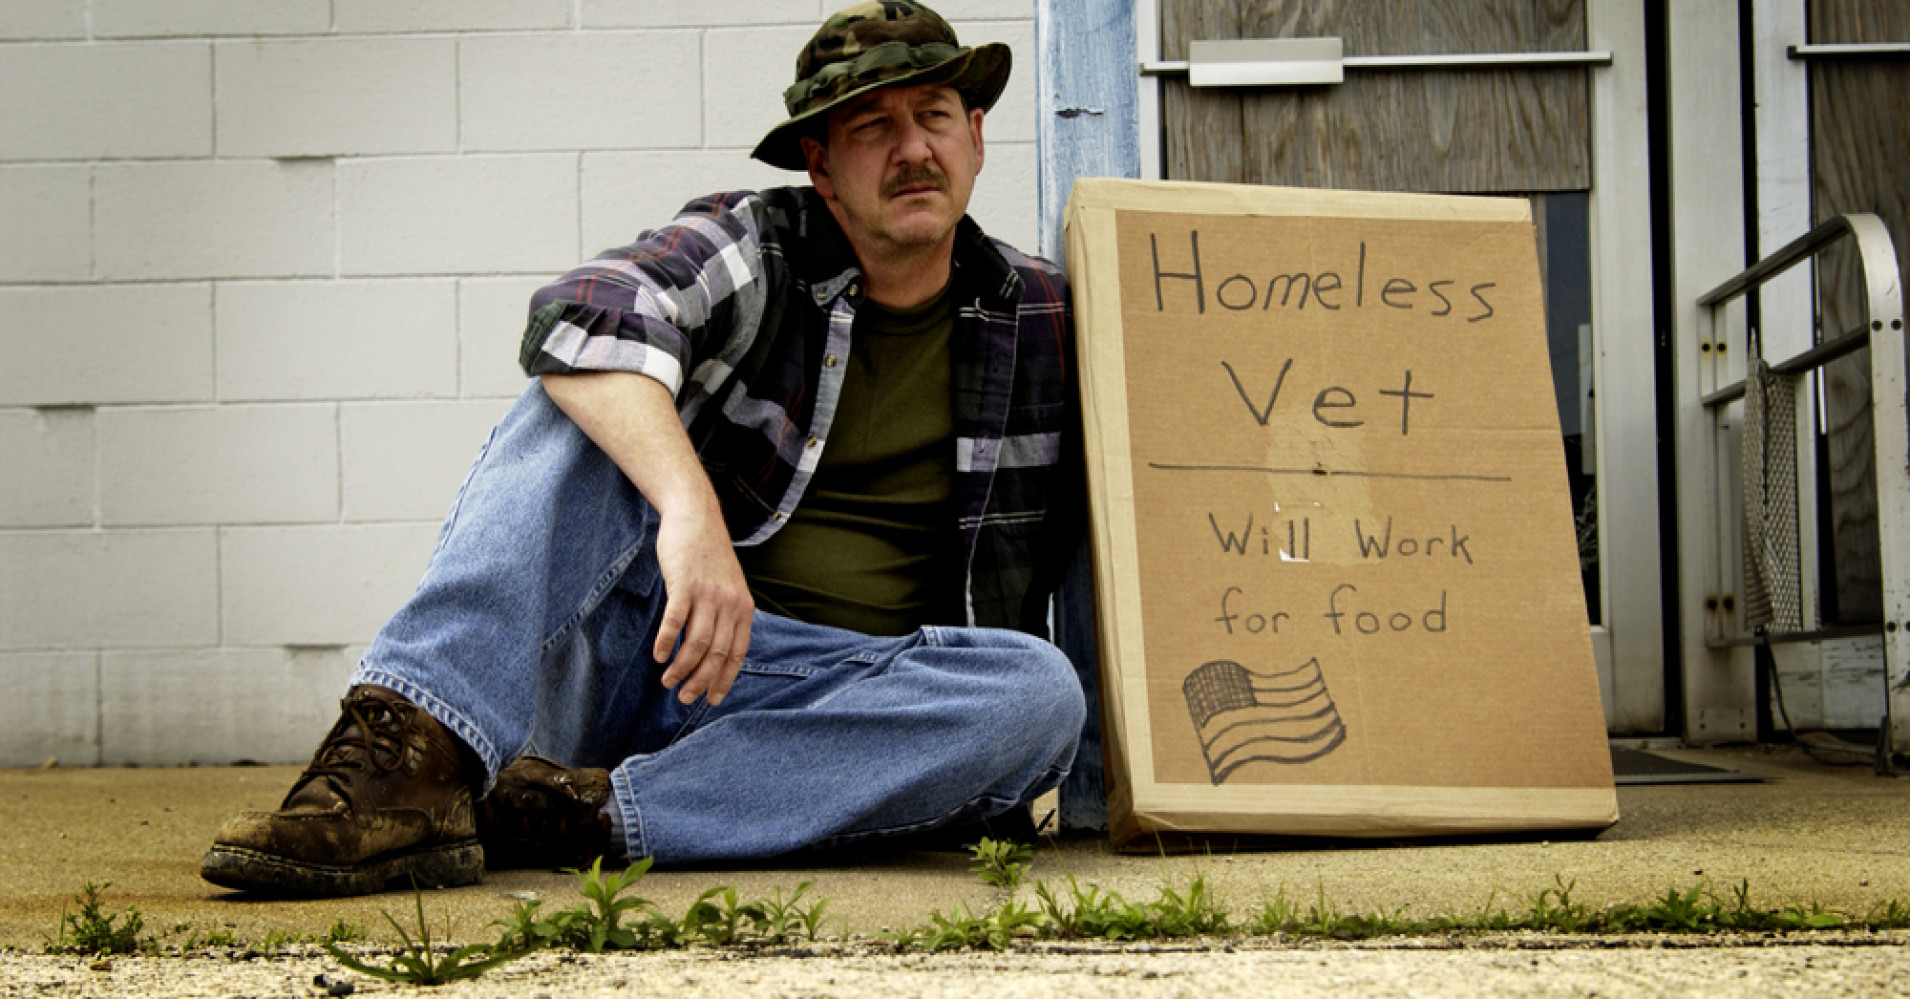 the disgrace of veteran homelessness The commonwealth of virginia is poised to be the first state to end veteran homelessness  veterans into permanent  veteran homelessness in this state.